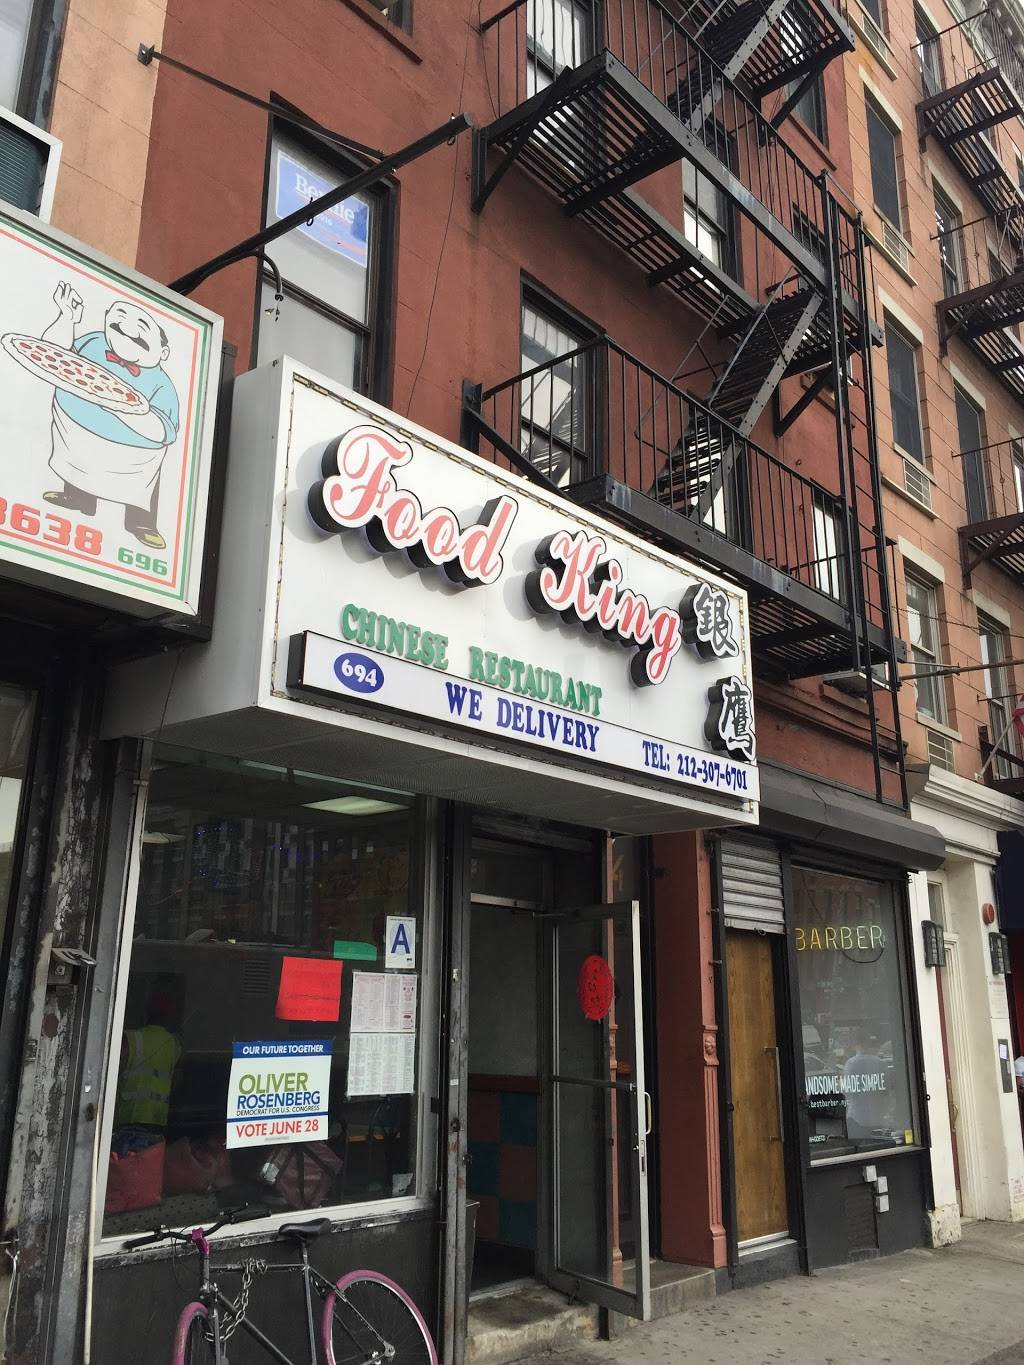 Food King | restaurant | 694 10th Ave, New York, NY 10019, USA | 2123076701 OR +1 212-307-6701